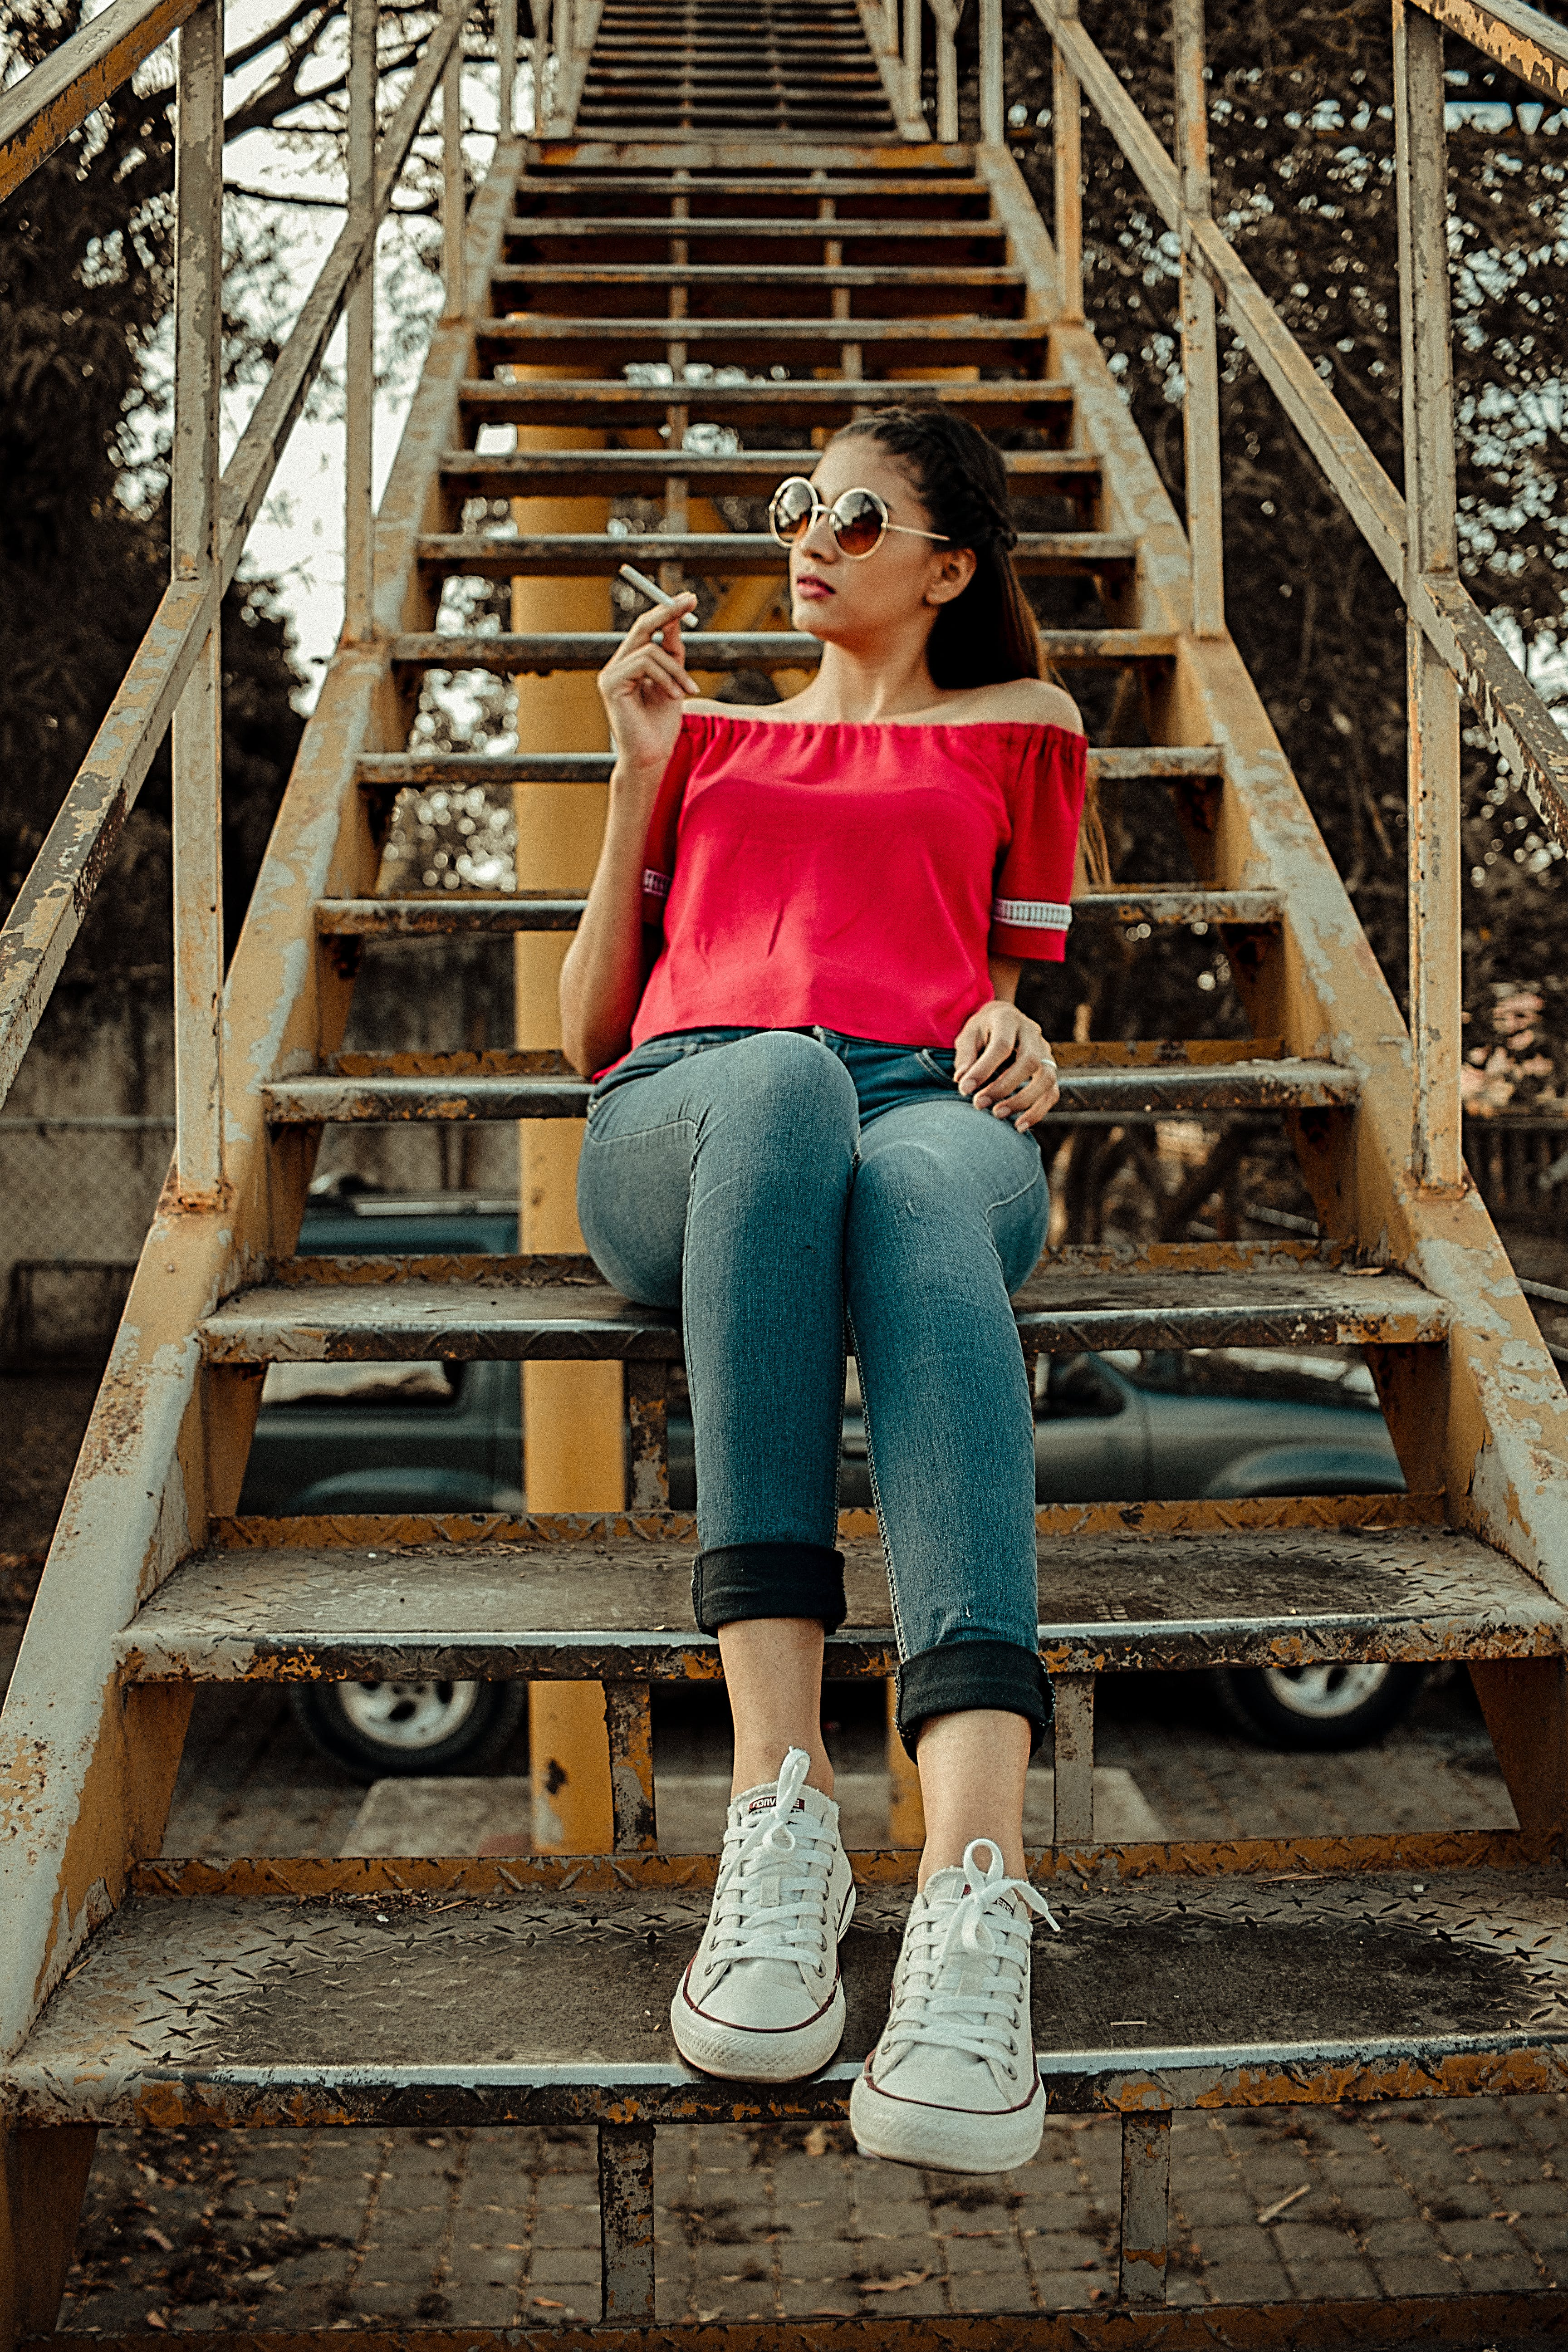 Woman Sitting on Yellow and Black Stairway